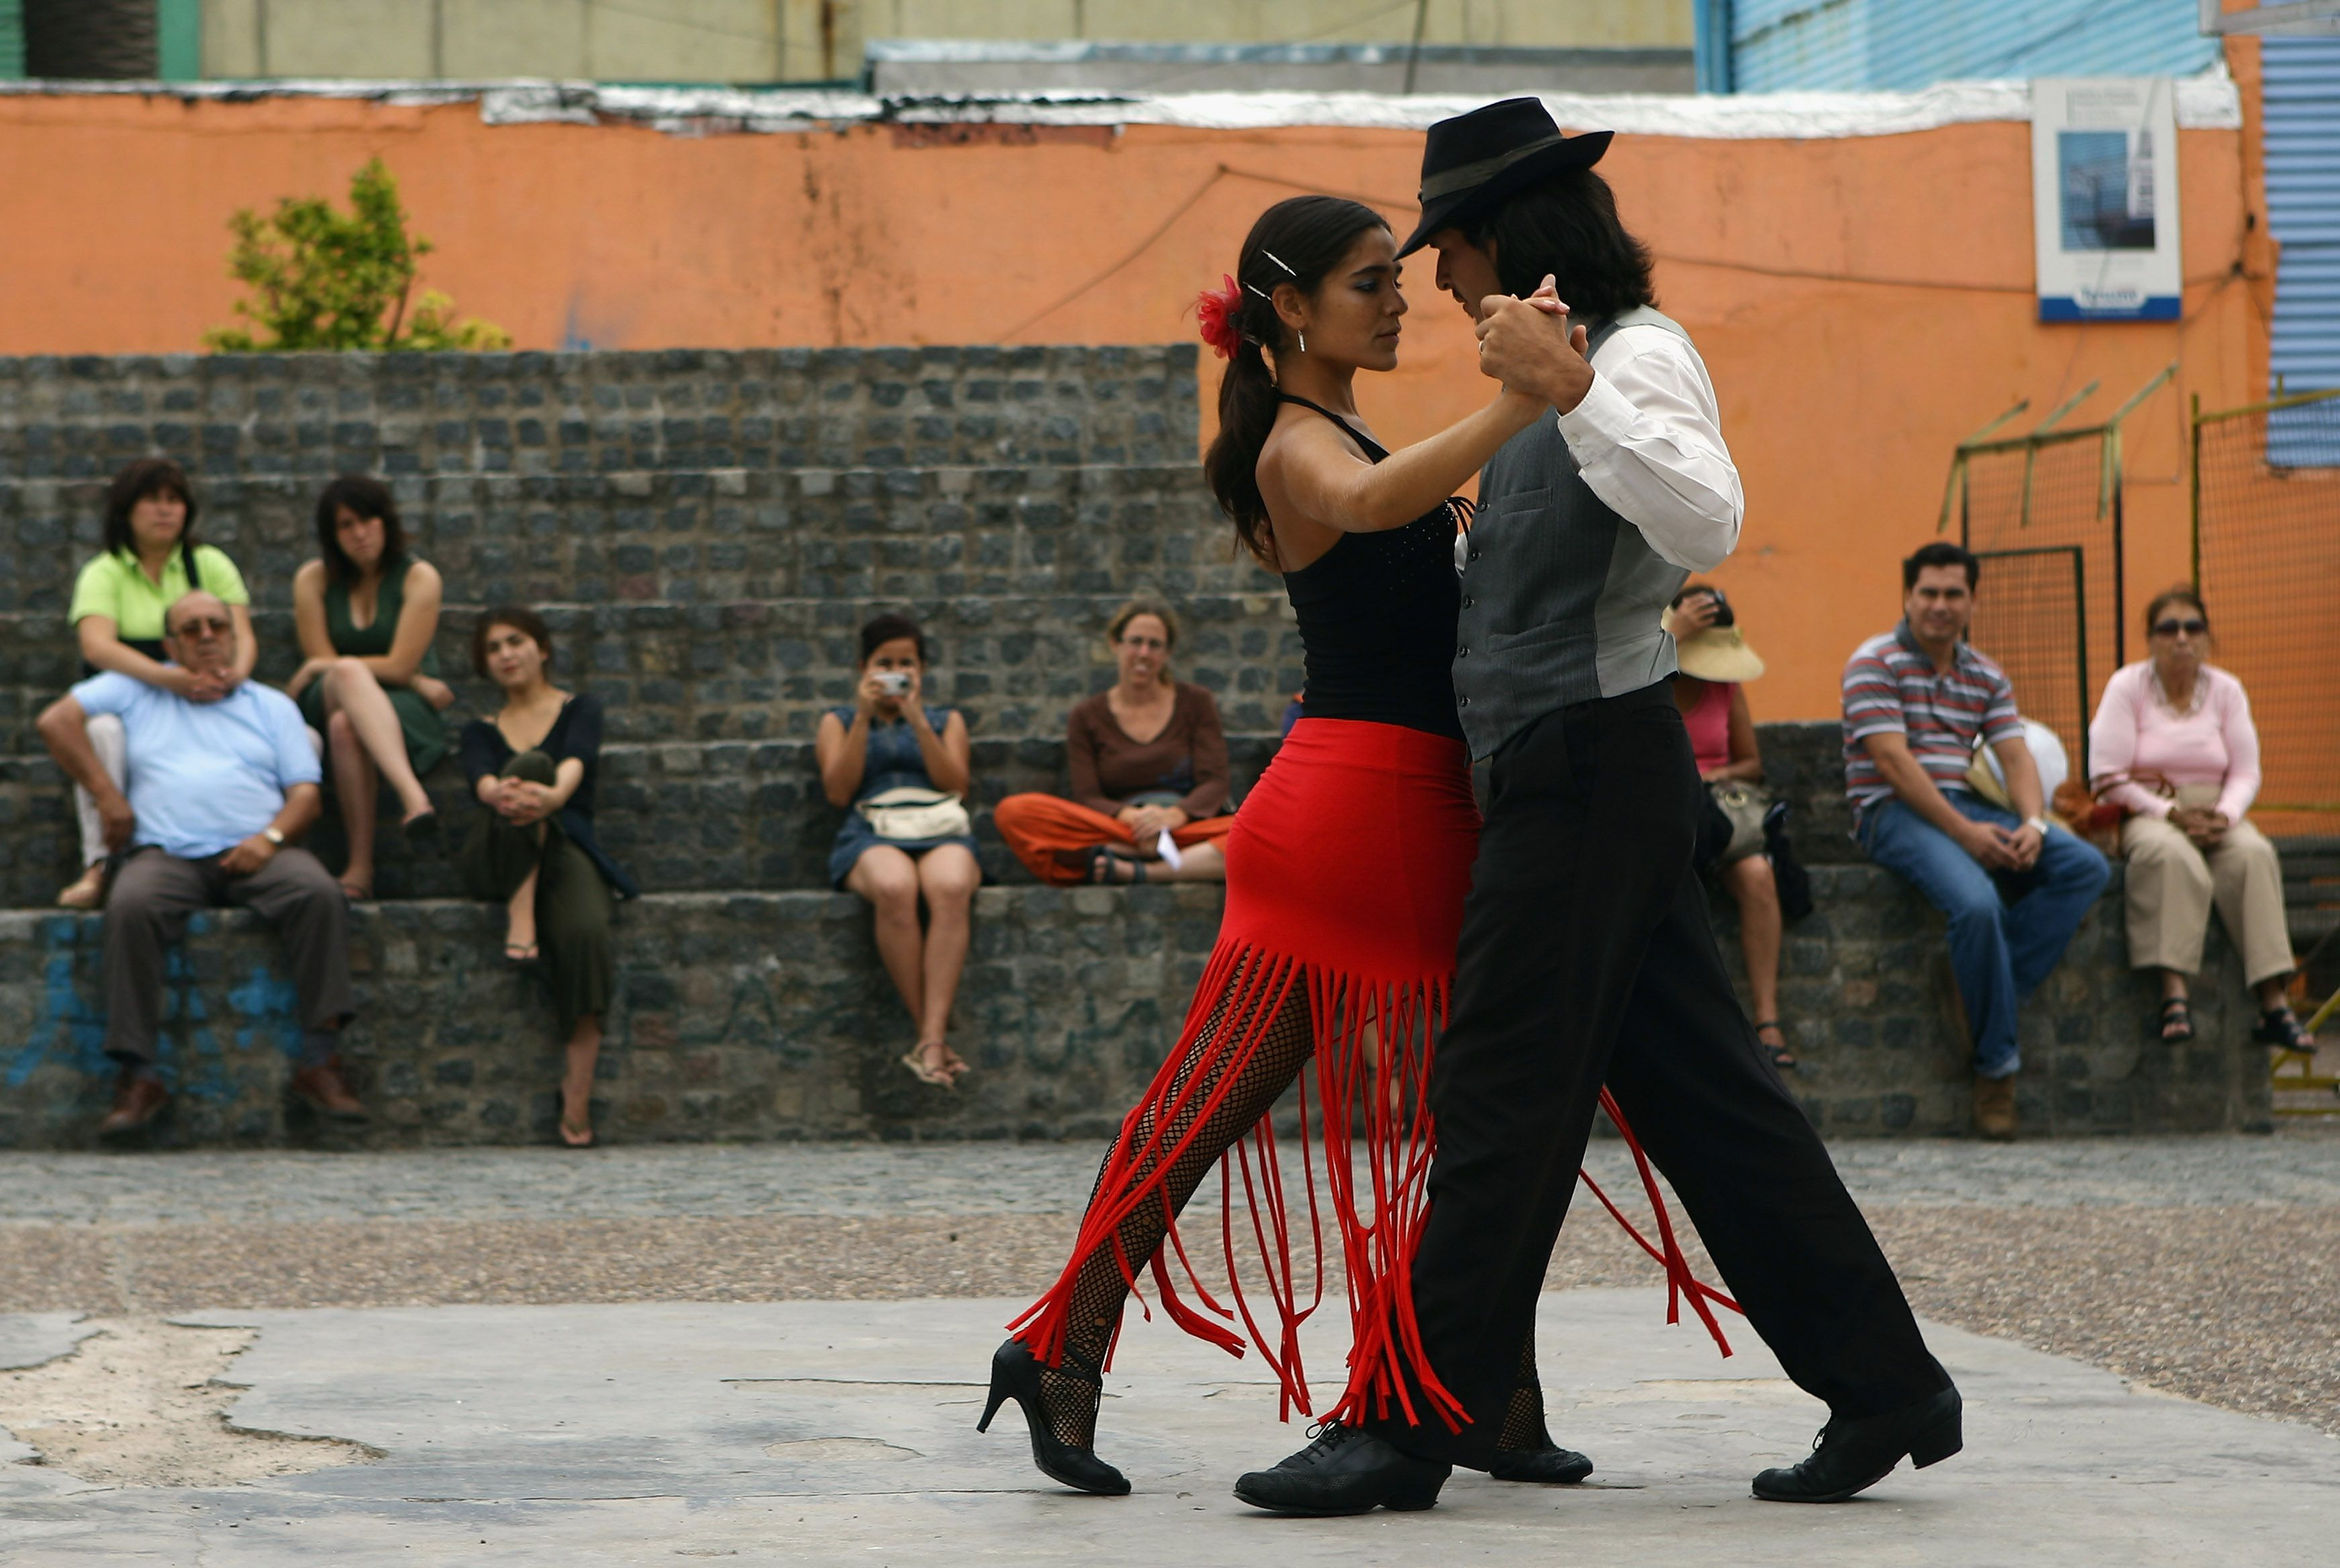 12 Types Of Ballroom Dances Foxtrot Steps Diagram Waltz Dance Two People Dancing The Tango